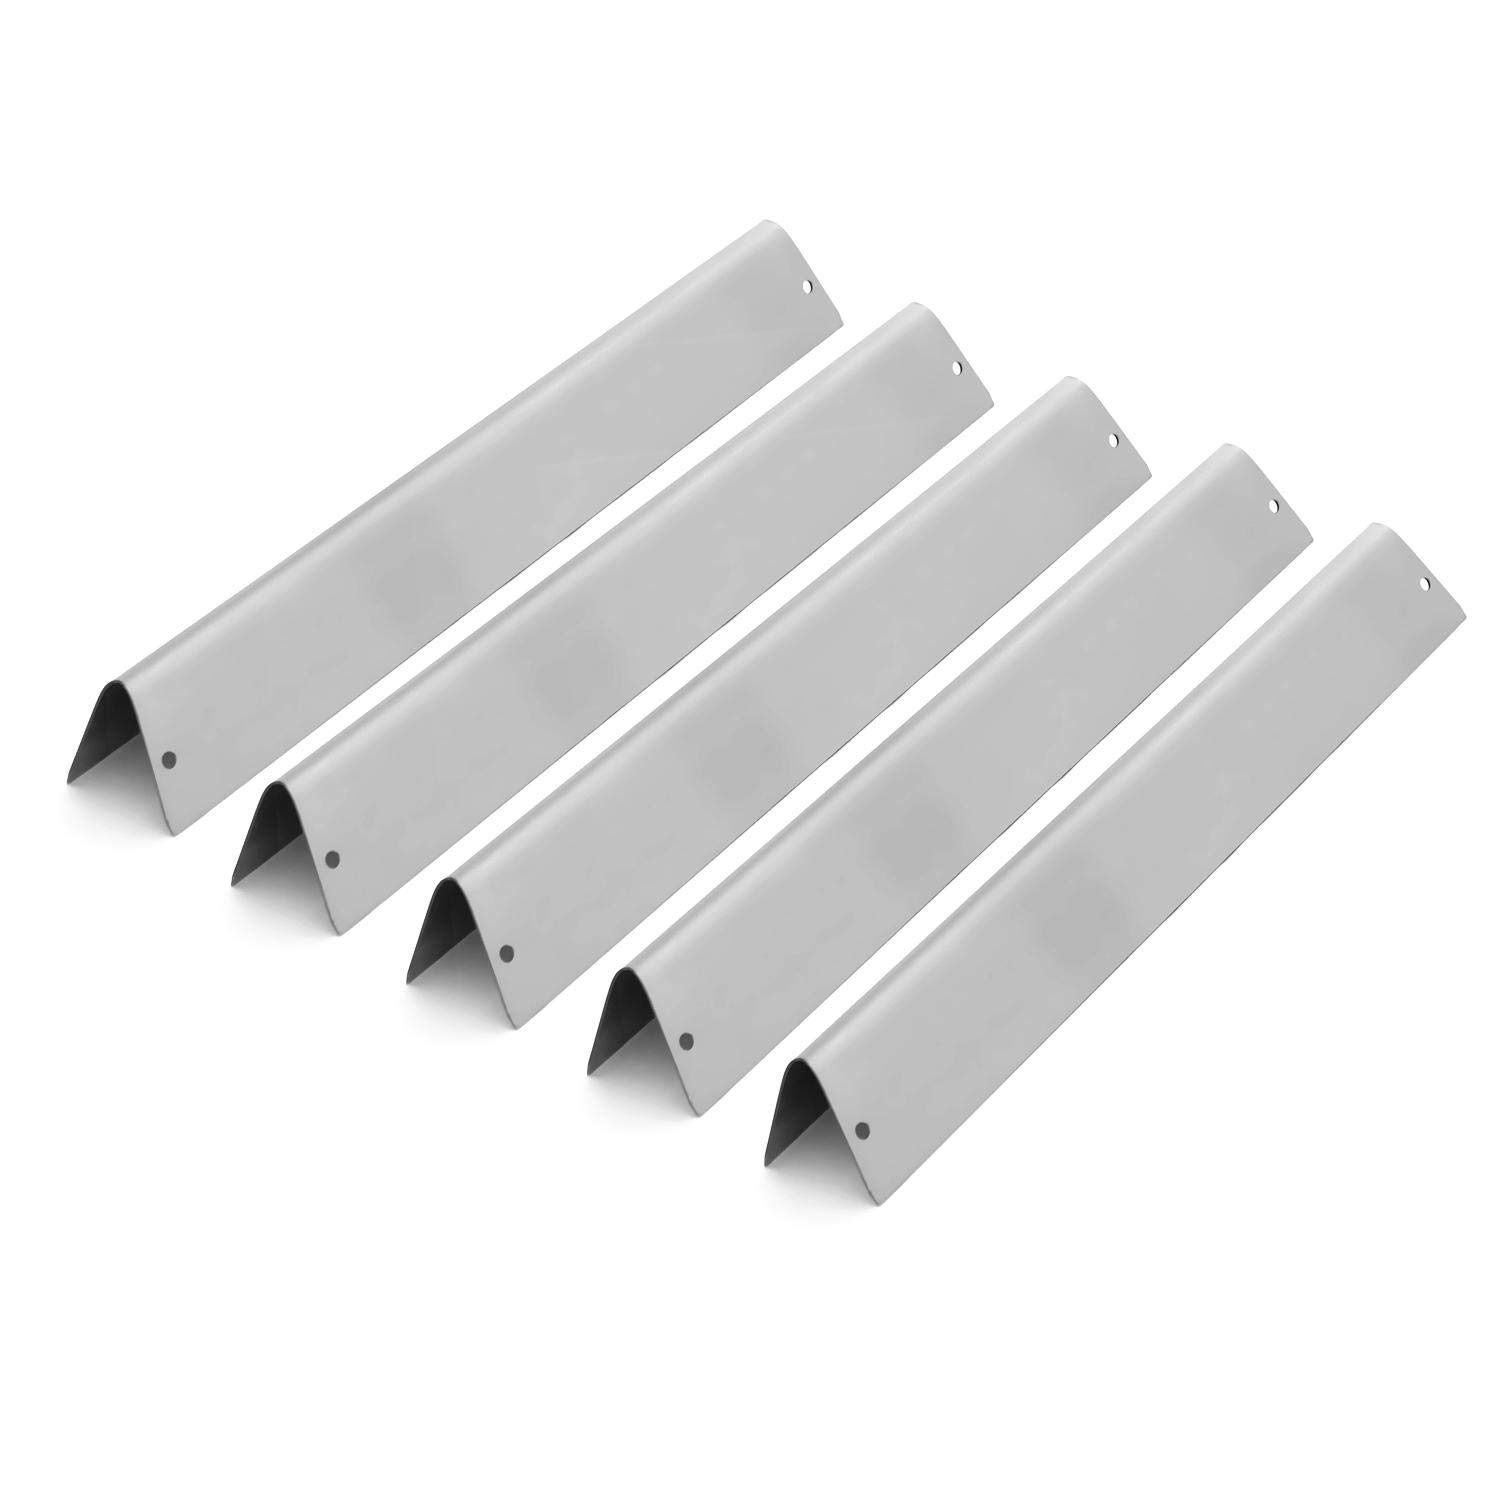 BBQGuys 7620 Stainless Steel Flavorizer Bars for Weber Genesis 300 Series Gas Grills W/Front Mounted Control Panel - 5-Pieces